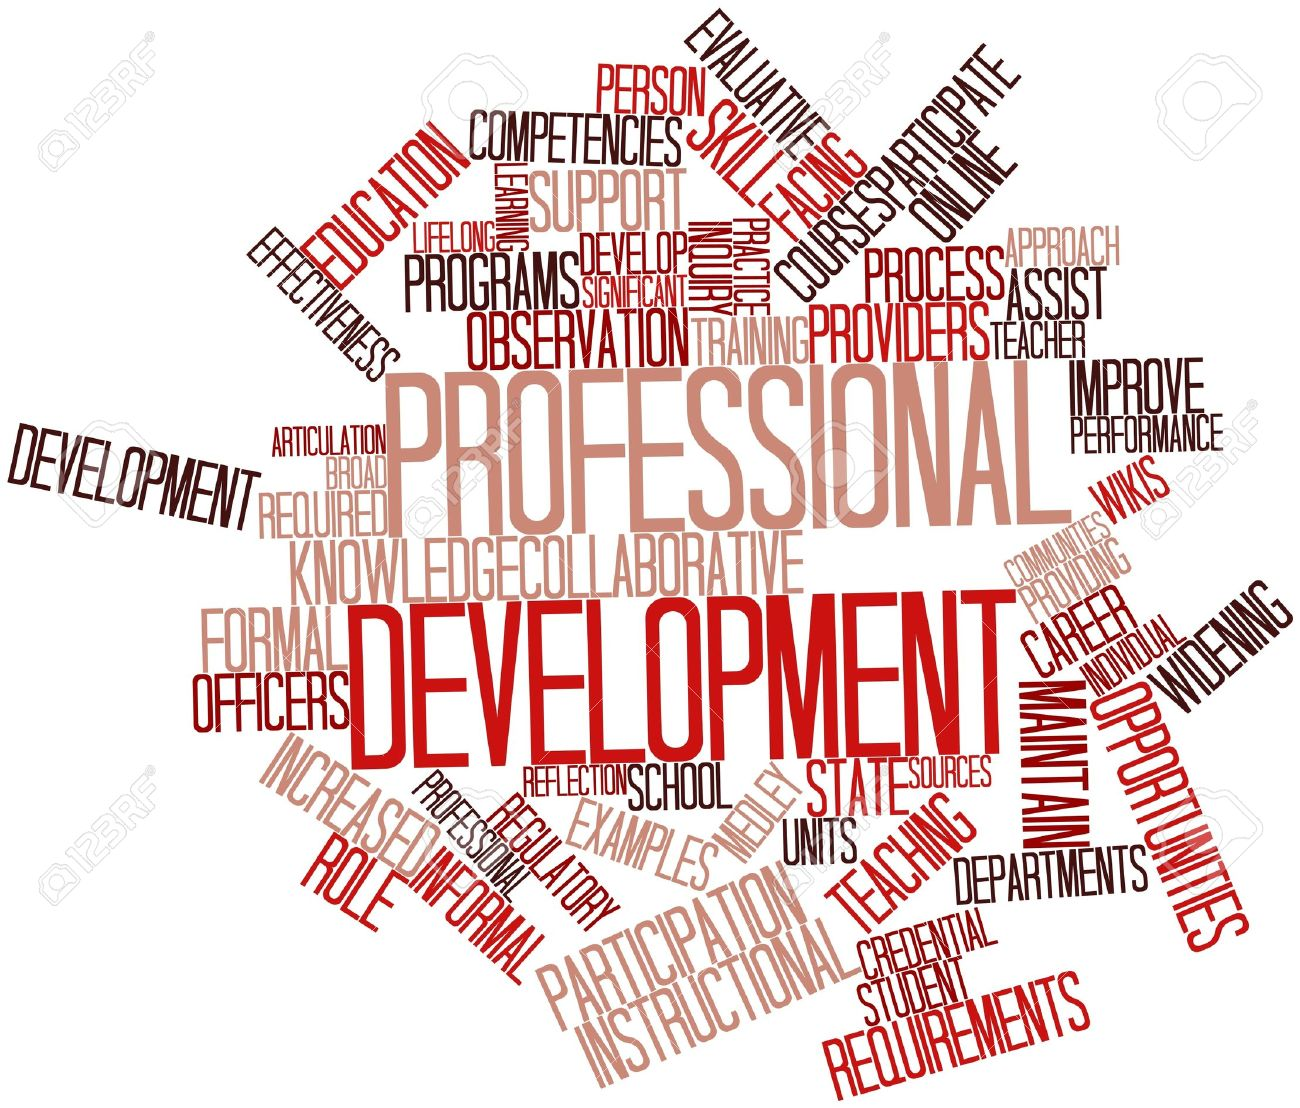 Abstract word cloud for Professional development with related tags and terms - 16772800